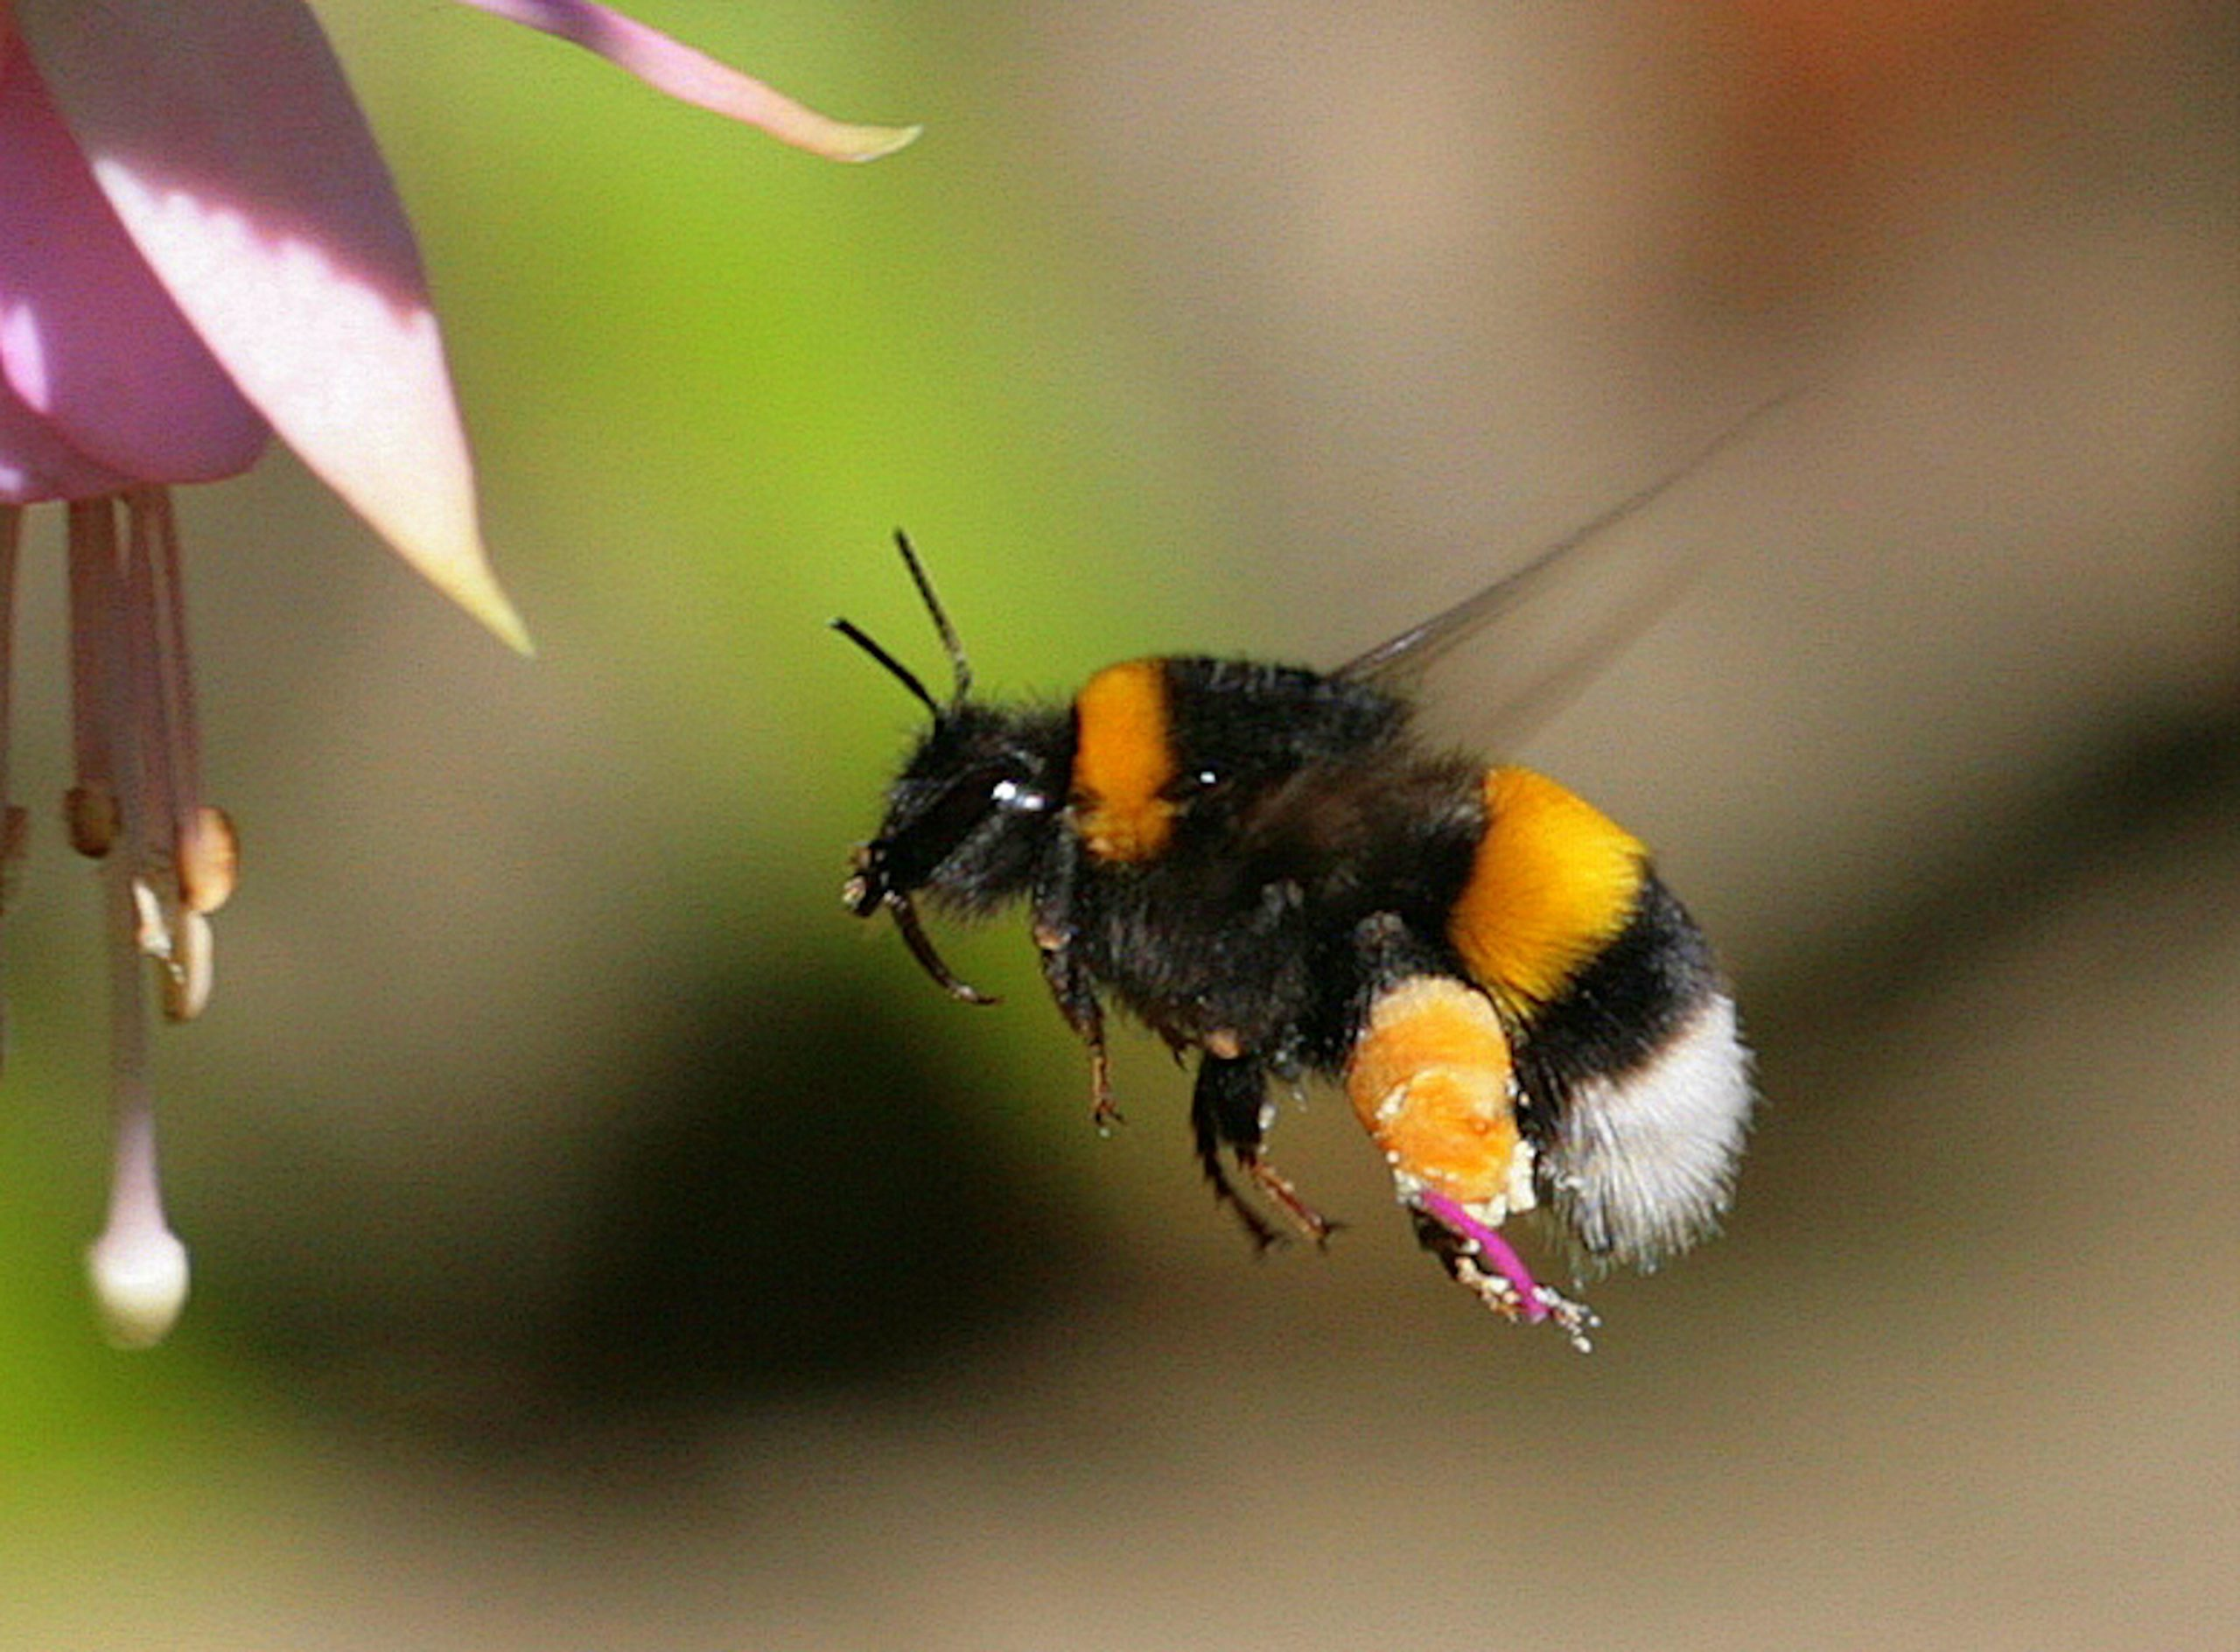 Bumblebees GettyImages-143666020-scaled